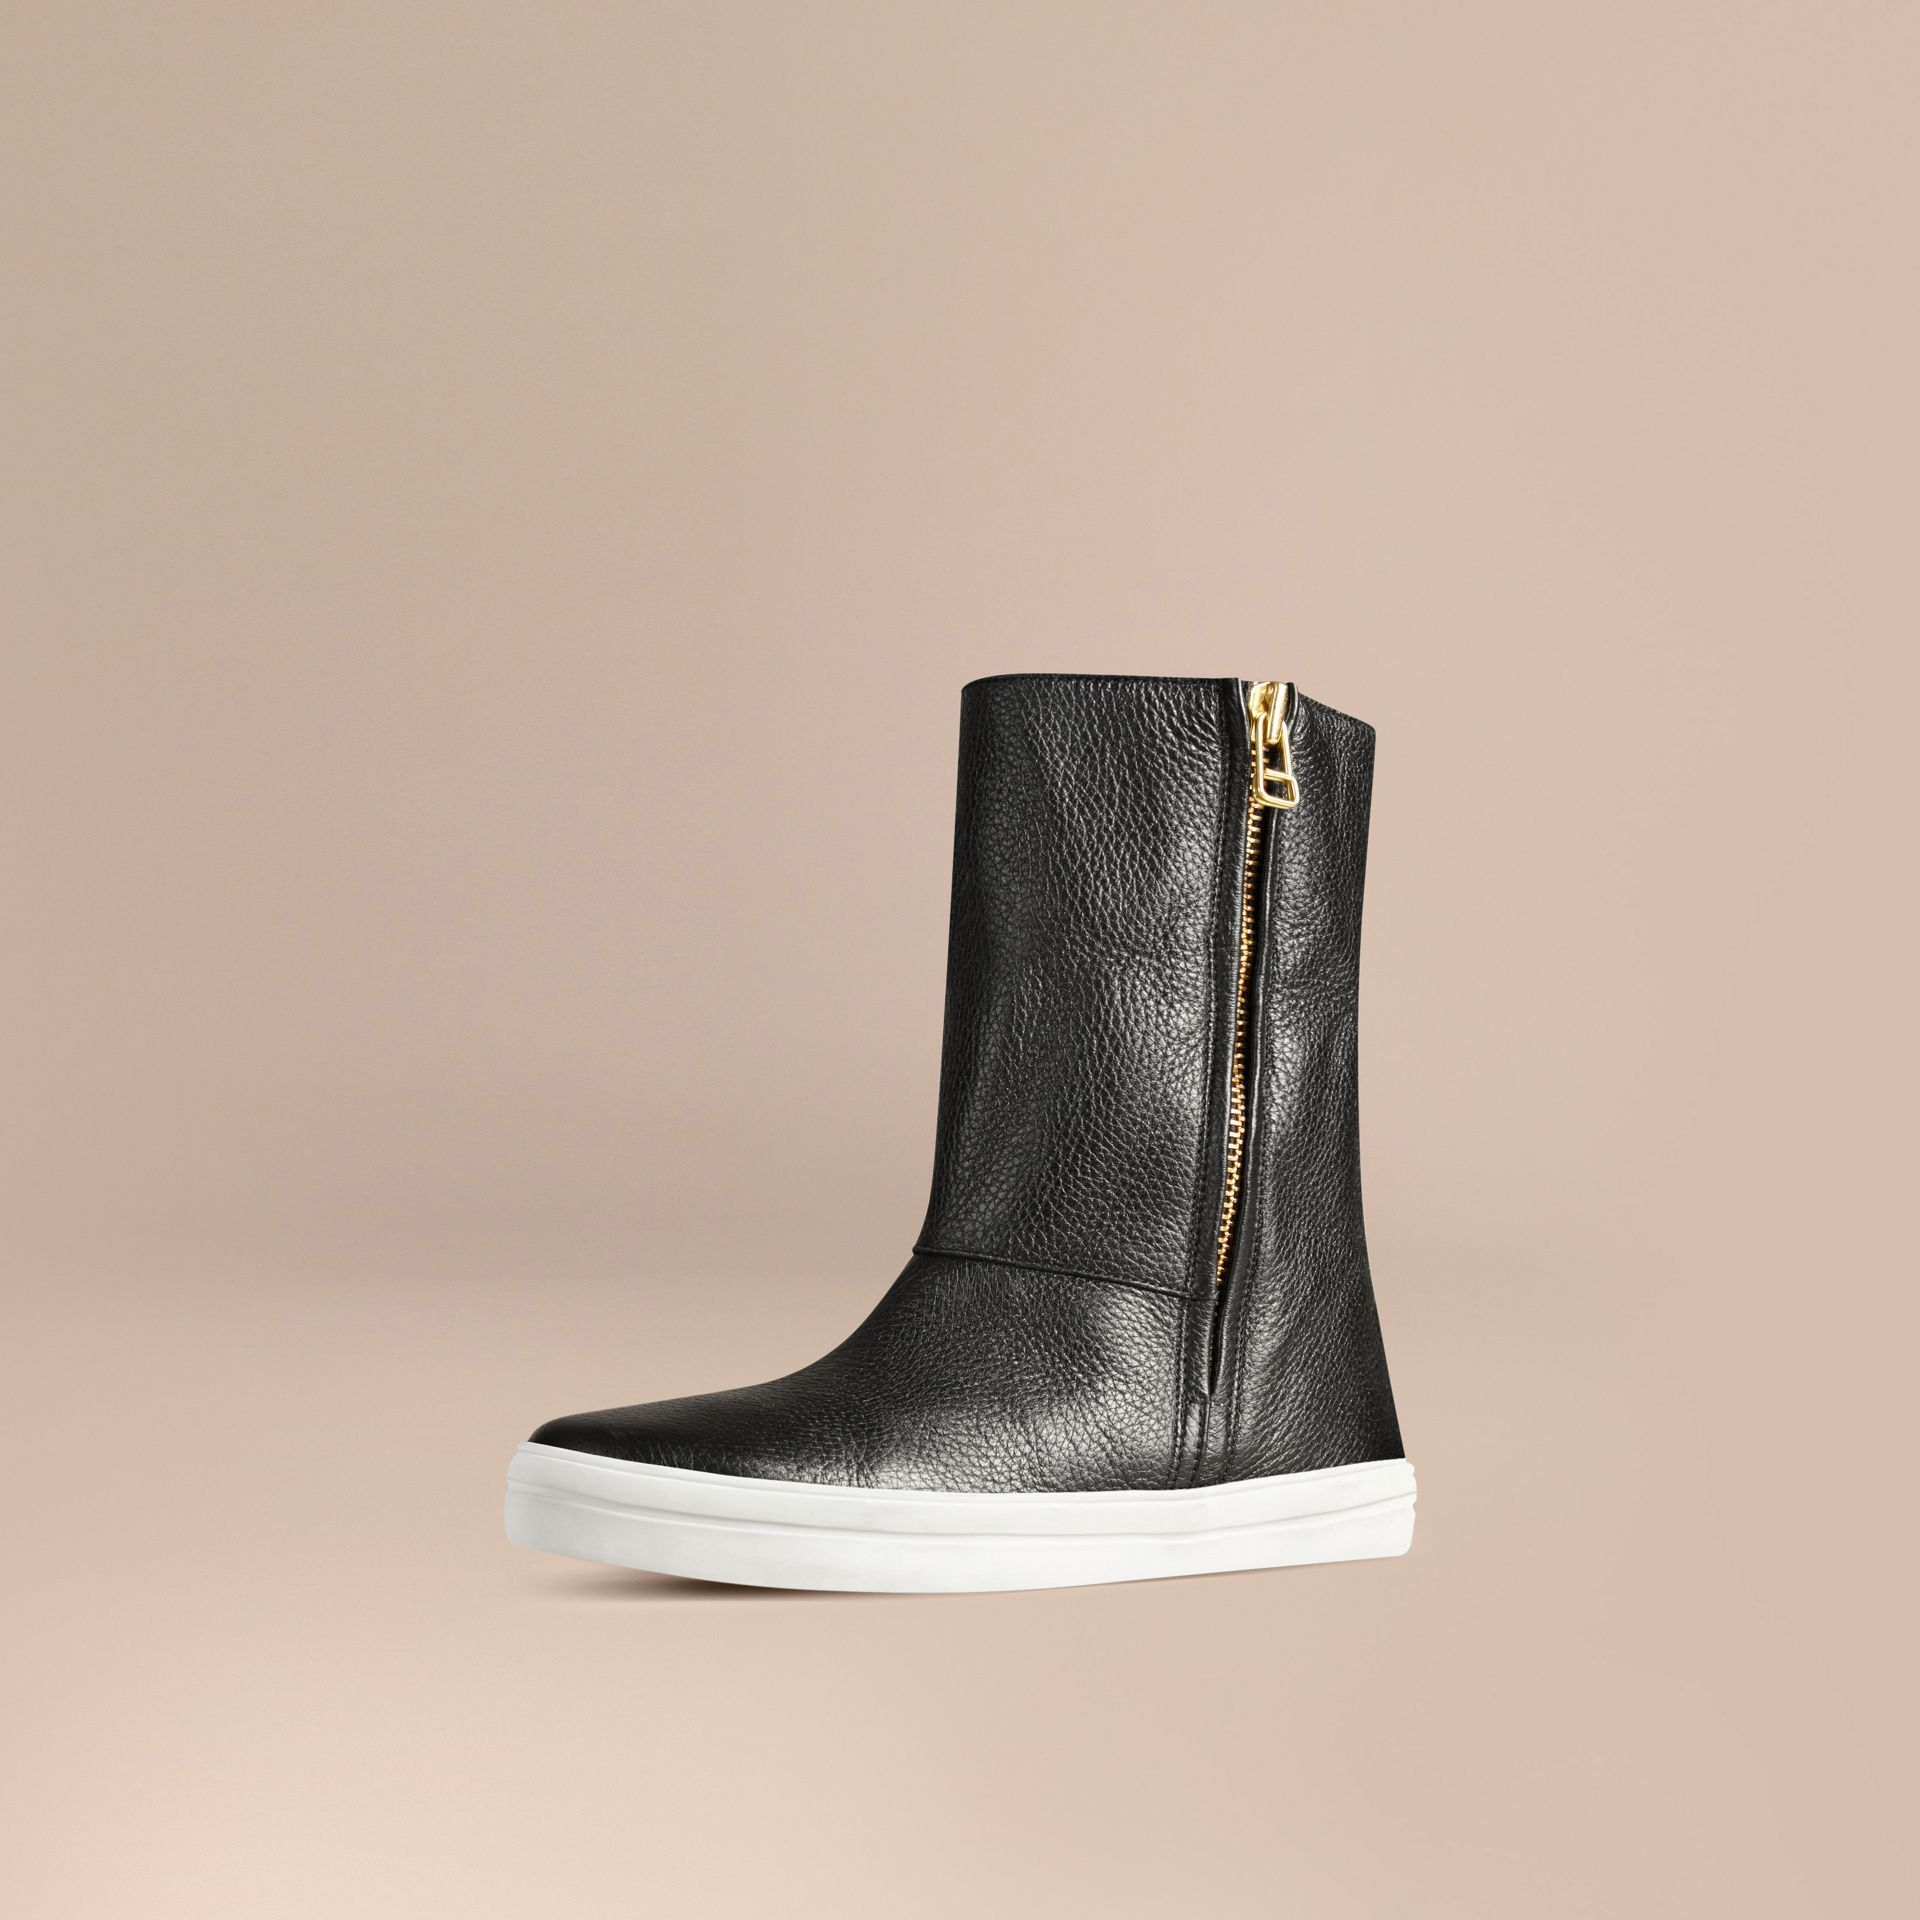 Shearling-lined Grainy Leather Ankle Boots in Black - Women | Burberry United States - gallery image 2